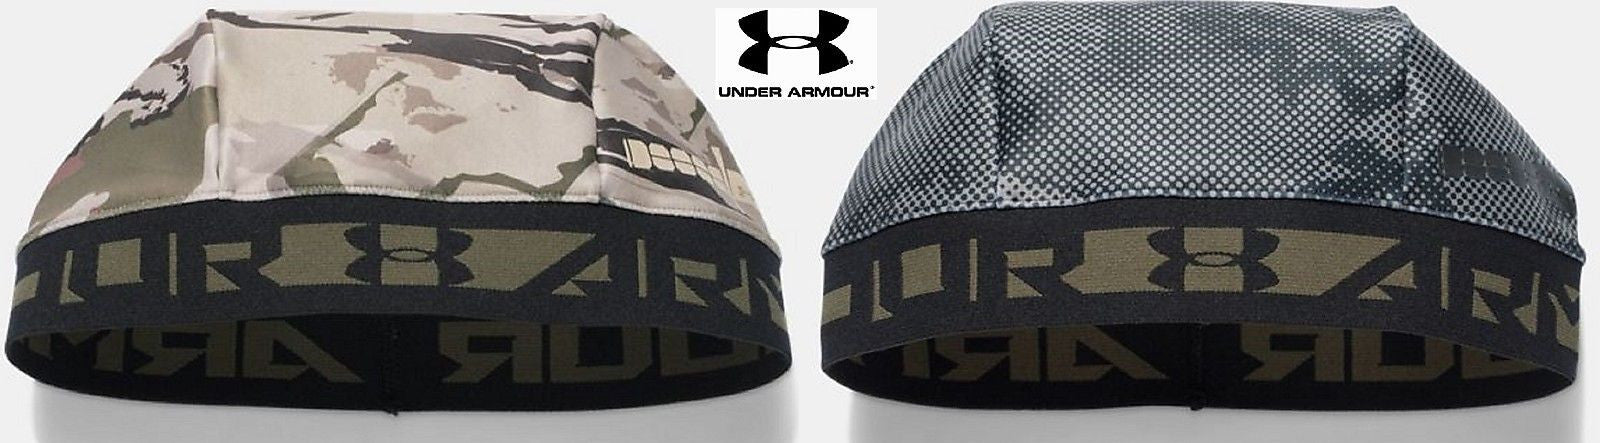 Under Armour CoolSwitch Camouflage Skull Cap Beanie - UA Helmet Liner  Skully Hat. acae12e4213